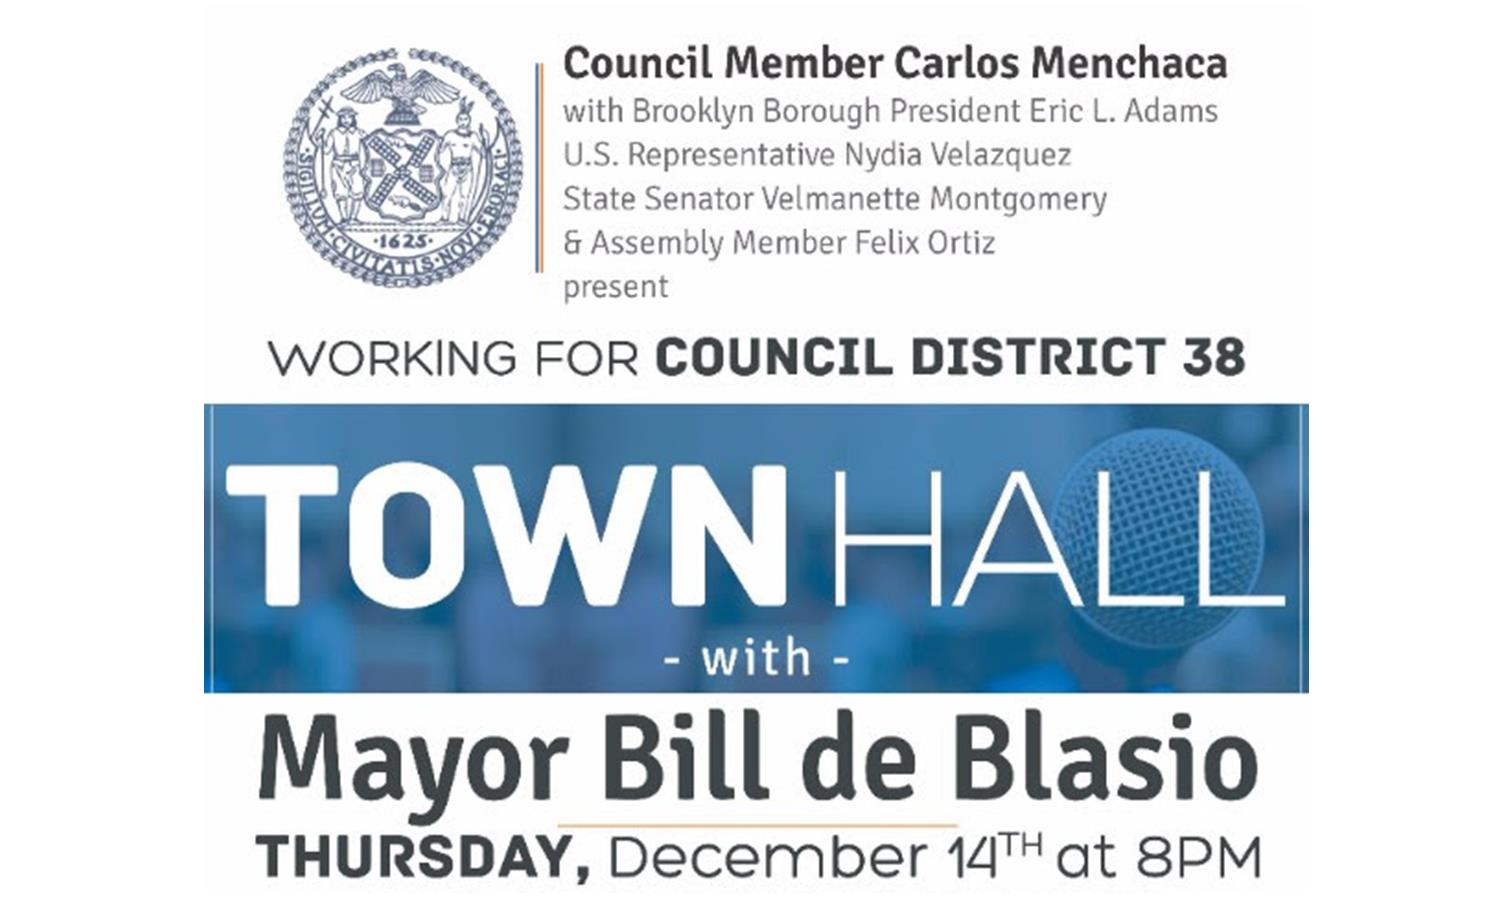 District 38 Townhall with Mayor de Blasio